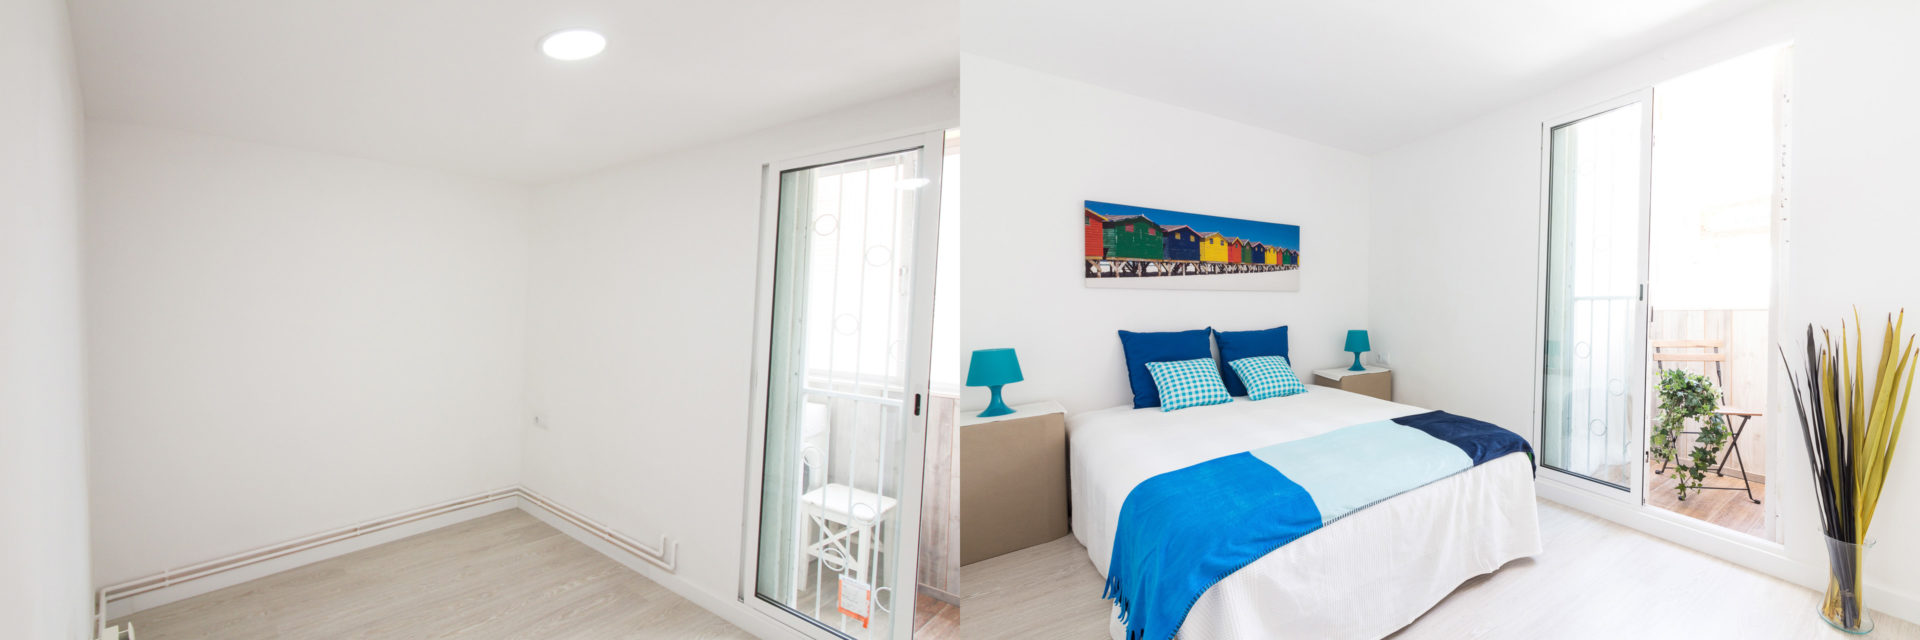 home staging raval dormitorio carton foto antes despues